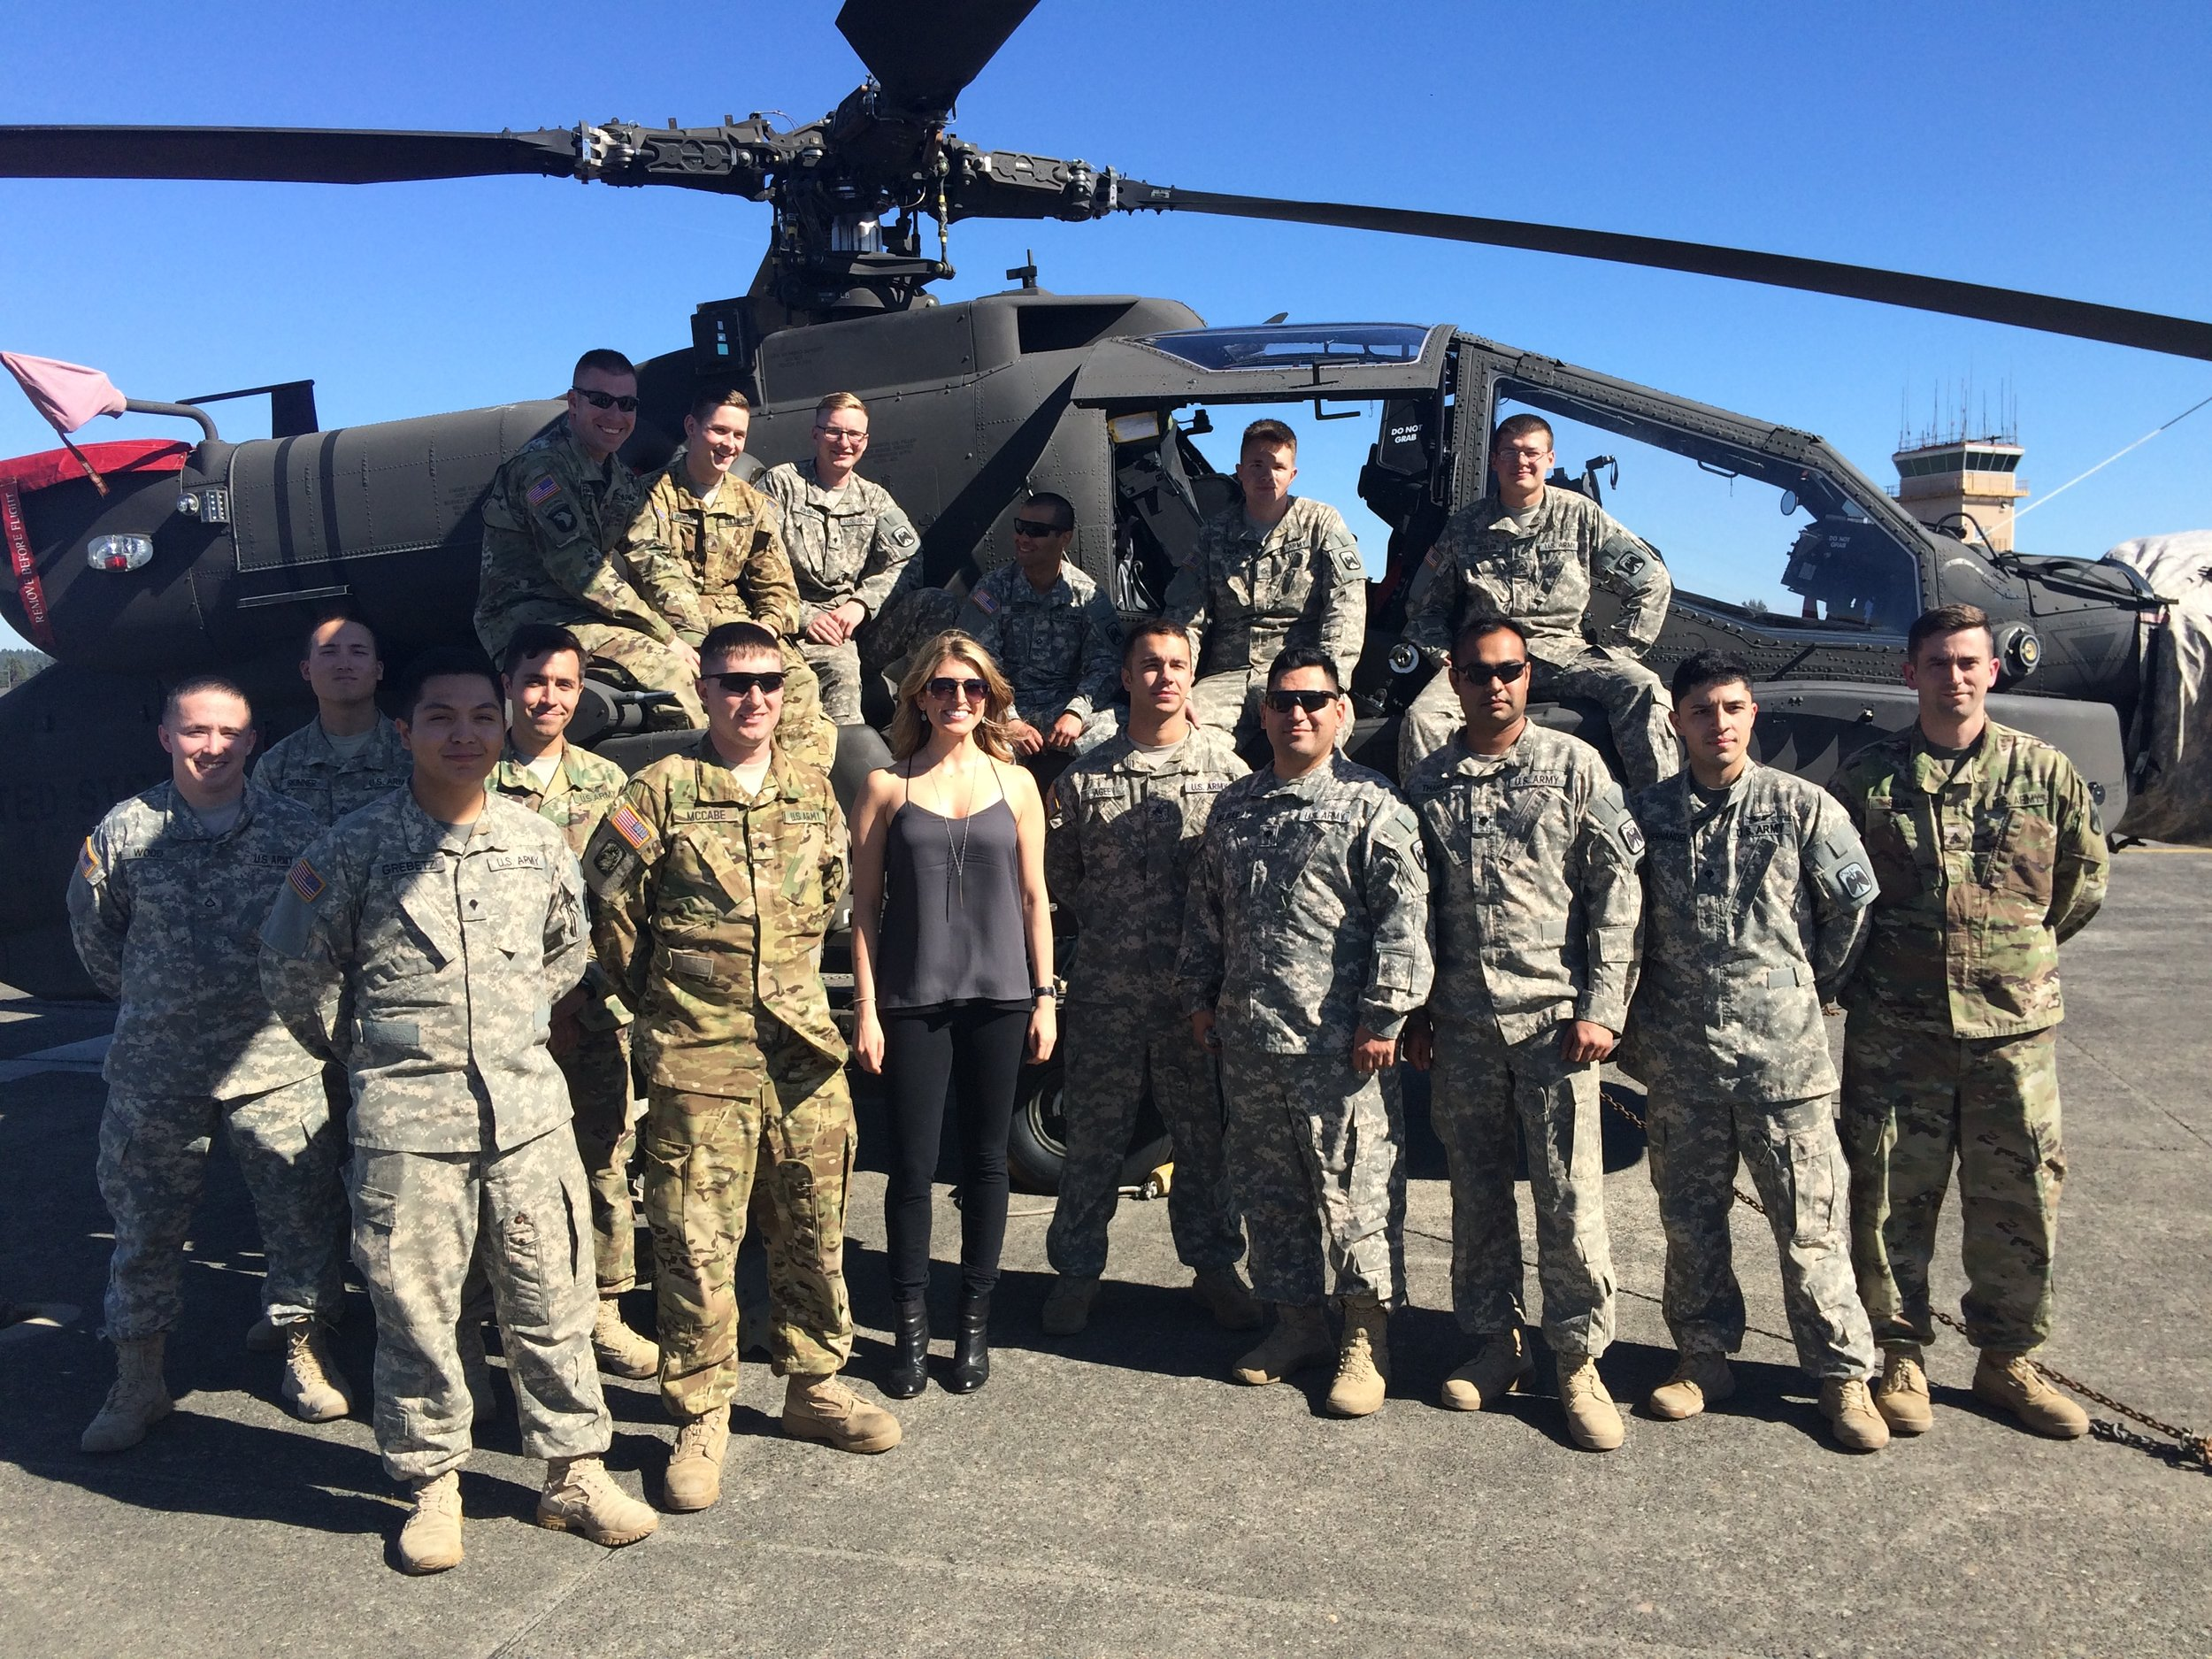 Janine with military members at Joint Base Lewis McChord in Tacoma, Washington